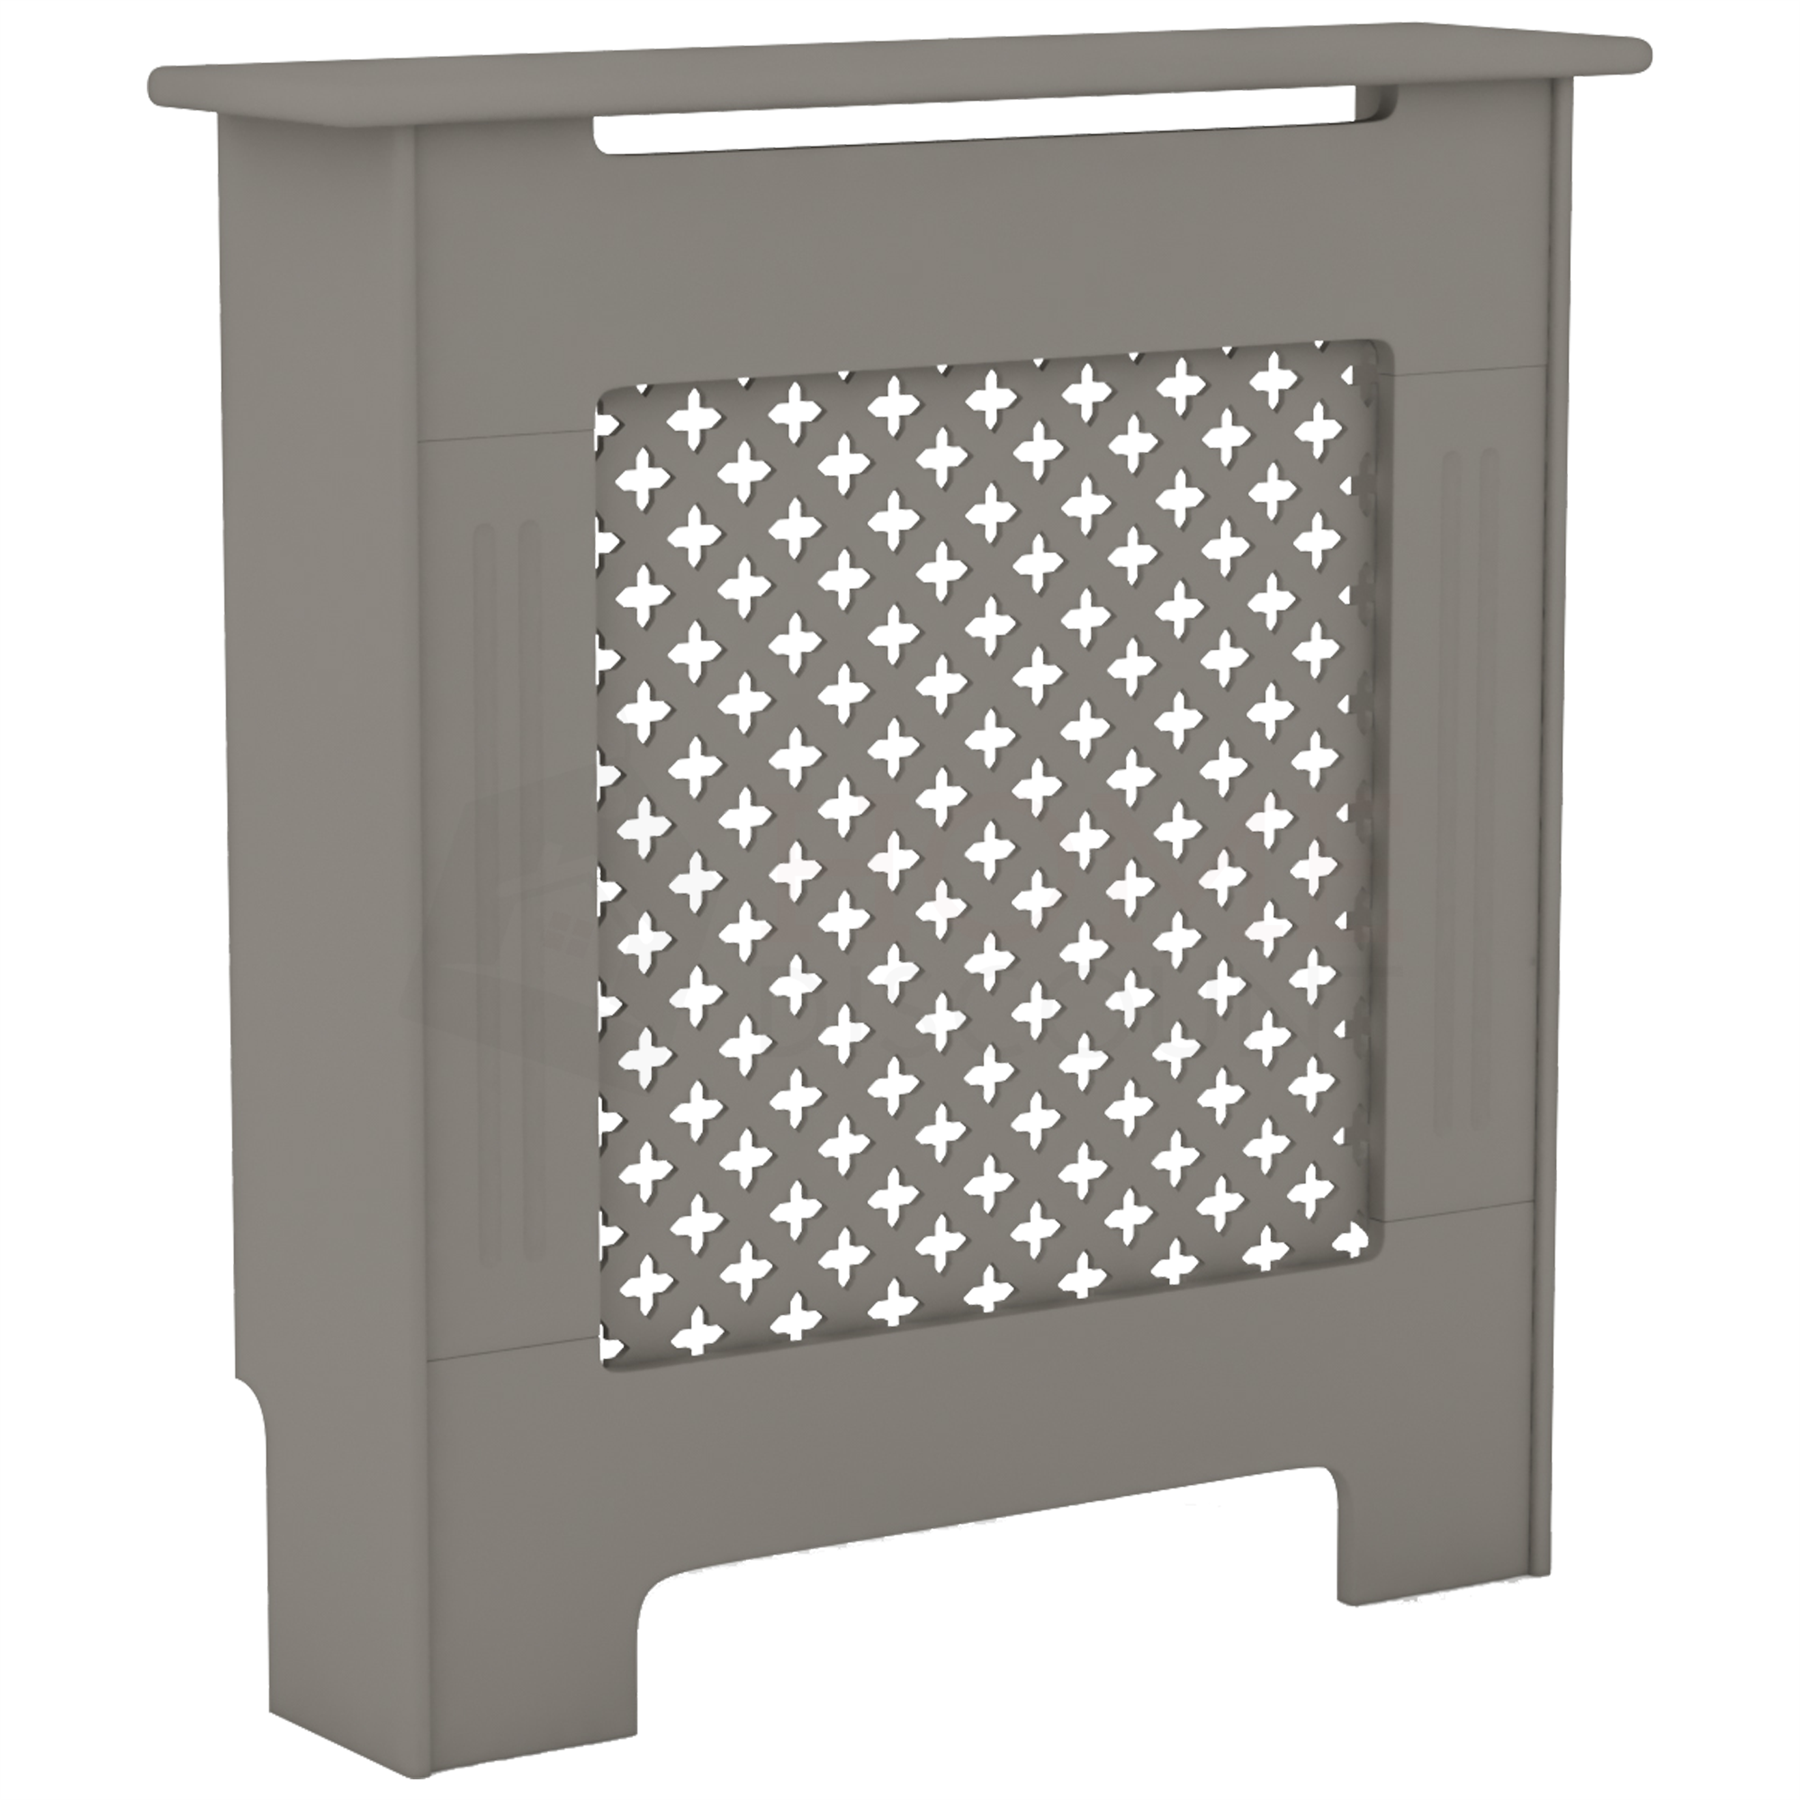 thumbnail 209 - Radiator Cover White Unfinished Modern Traditional Wood Grill Cabinet Furniture